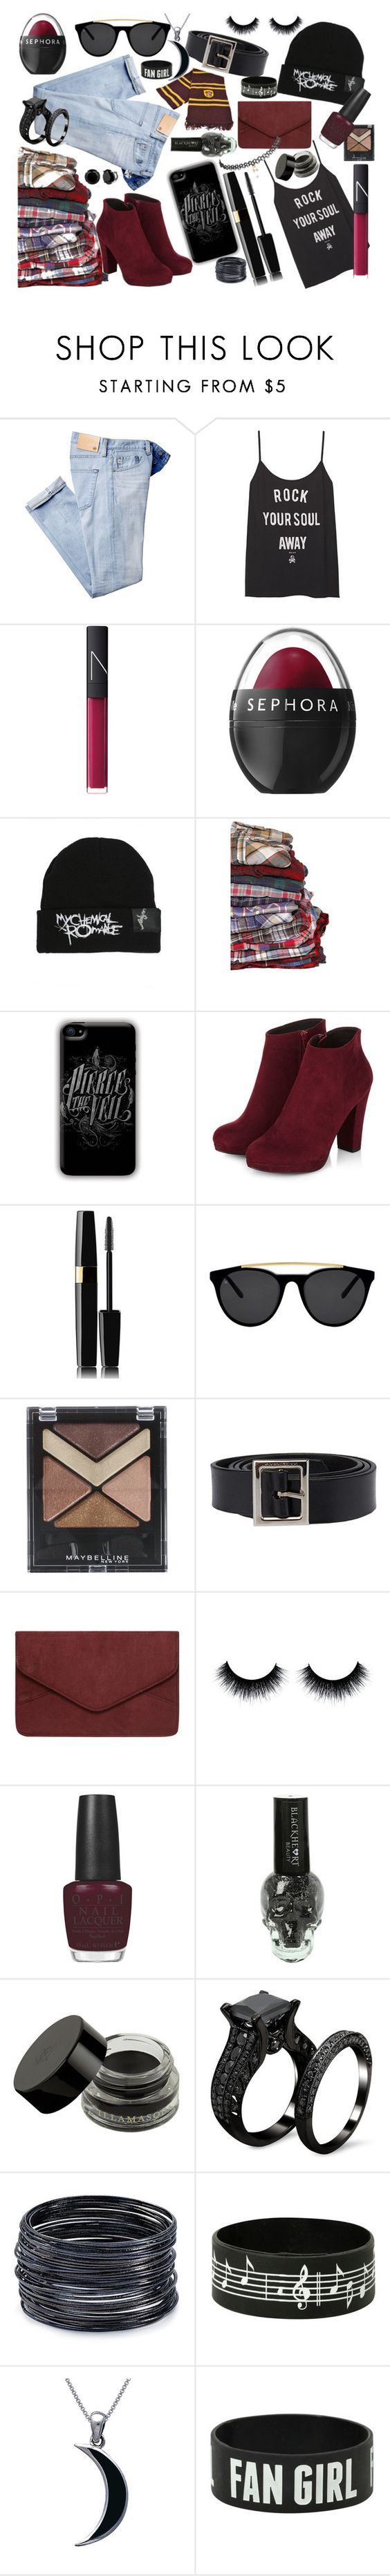 """Back to The Basics"" by deliriousdaydream ❤ liked on Polyvore featuring мода, AG Adriano Goldschmied, NARS Cosmetics, Sephora Collection, Smoke & Mirrors, Maybelline, Dolce&Gabbana, Dorothy Perkins, OPI и ABS by Allen Schwartz"